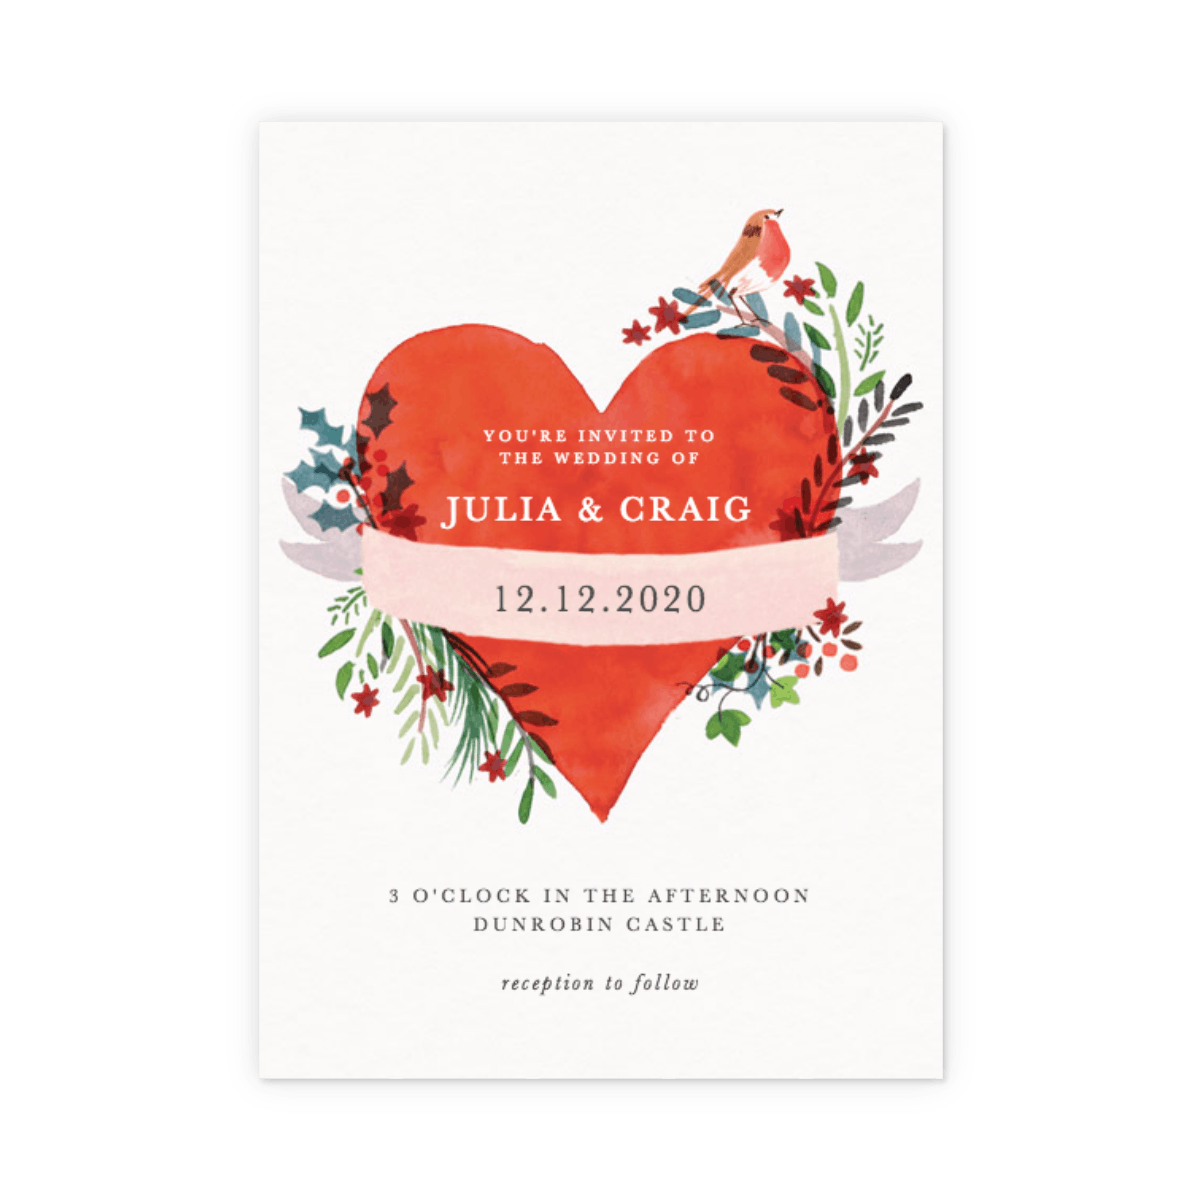 Https%3a%2f%2fwww.papier.com%2fproduct image%2f25478%2f4%2fchristmas heart 6357 vorderseite 1511789229.png?ixlib=rb 1.1